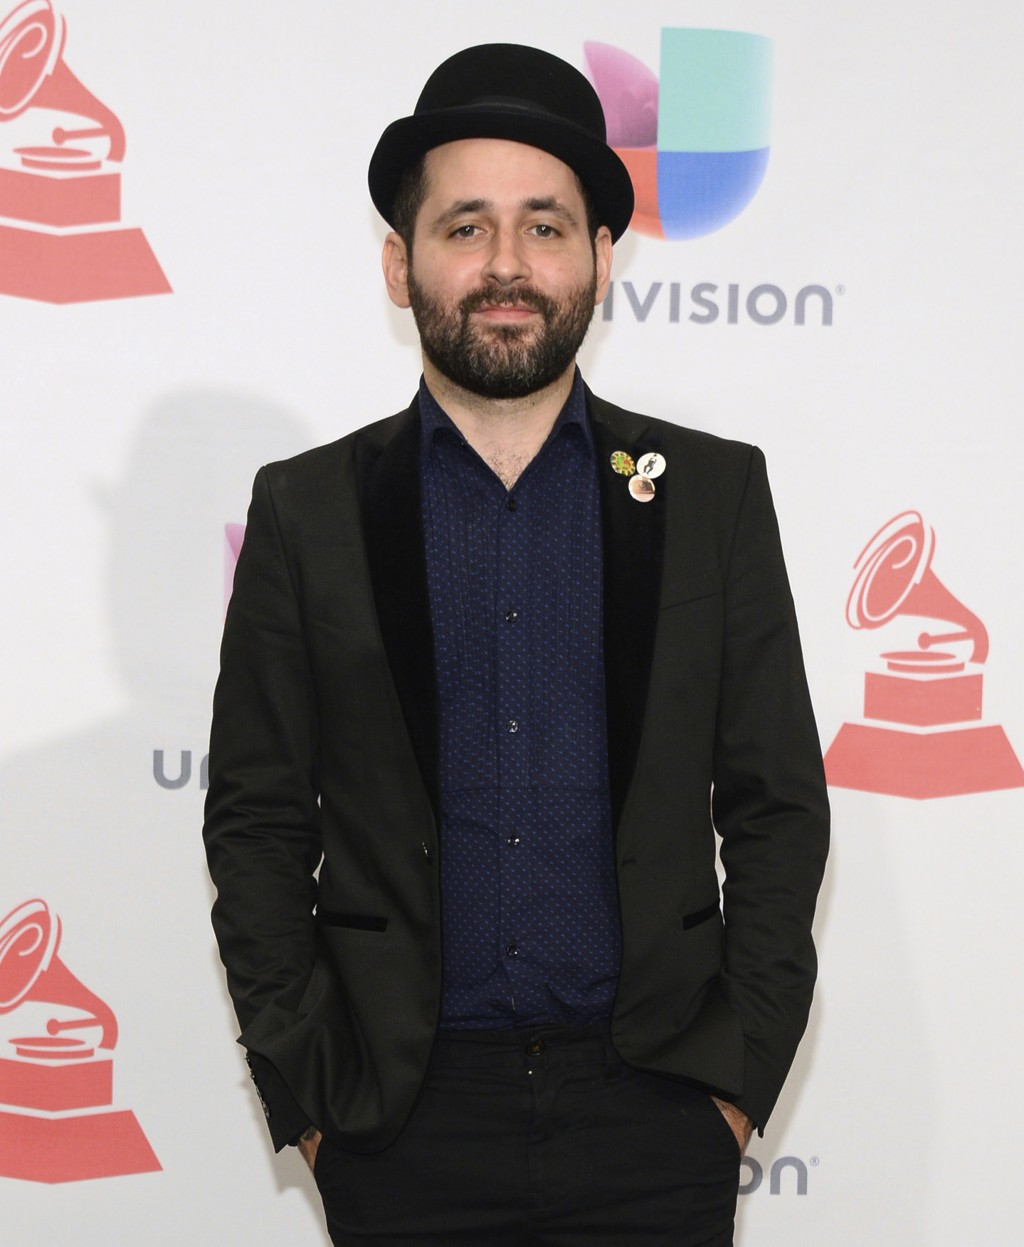 FILE - In this Nov. 19, 2015, file photo, Eduardo Cabra, of Calle 13, poses in the press room at the 16th annual Latin Grammy Awards in Las Vegas. Cab...